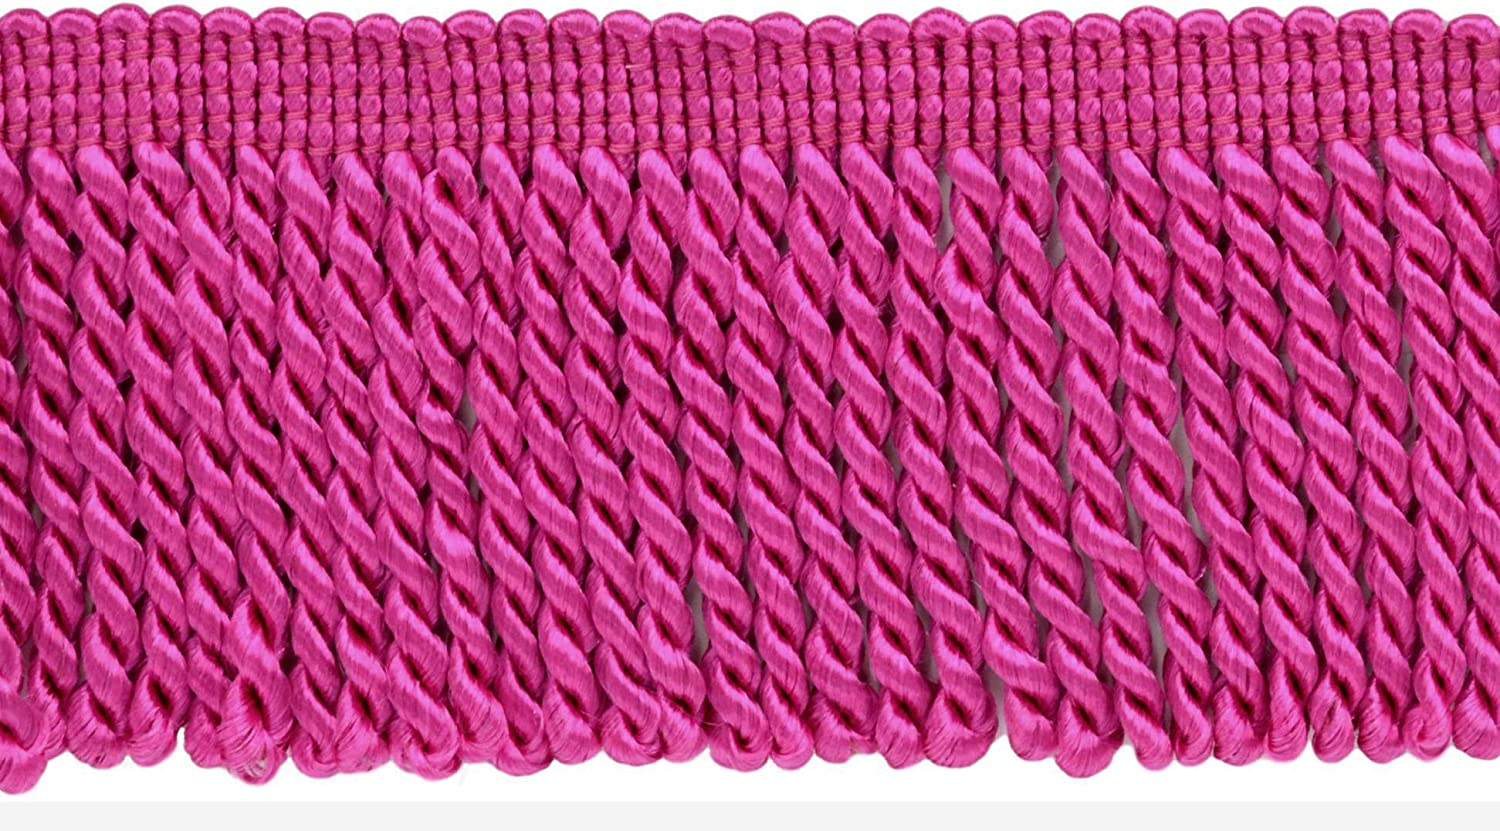 156|Sold by The Yard D/ÉCOPRO 2.5 Inch Hot Pink Bullion Fringe Trim|Style# EF25 Color